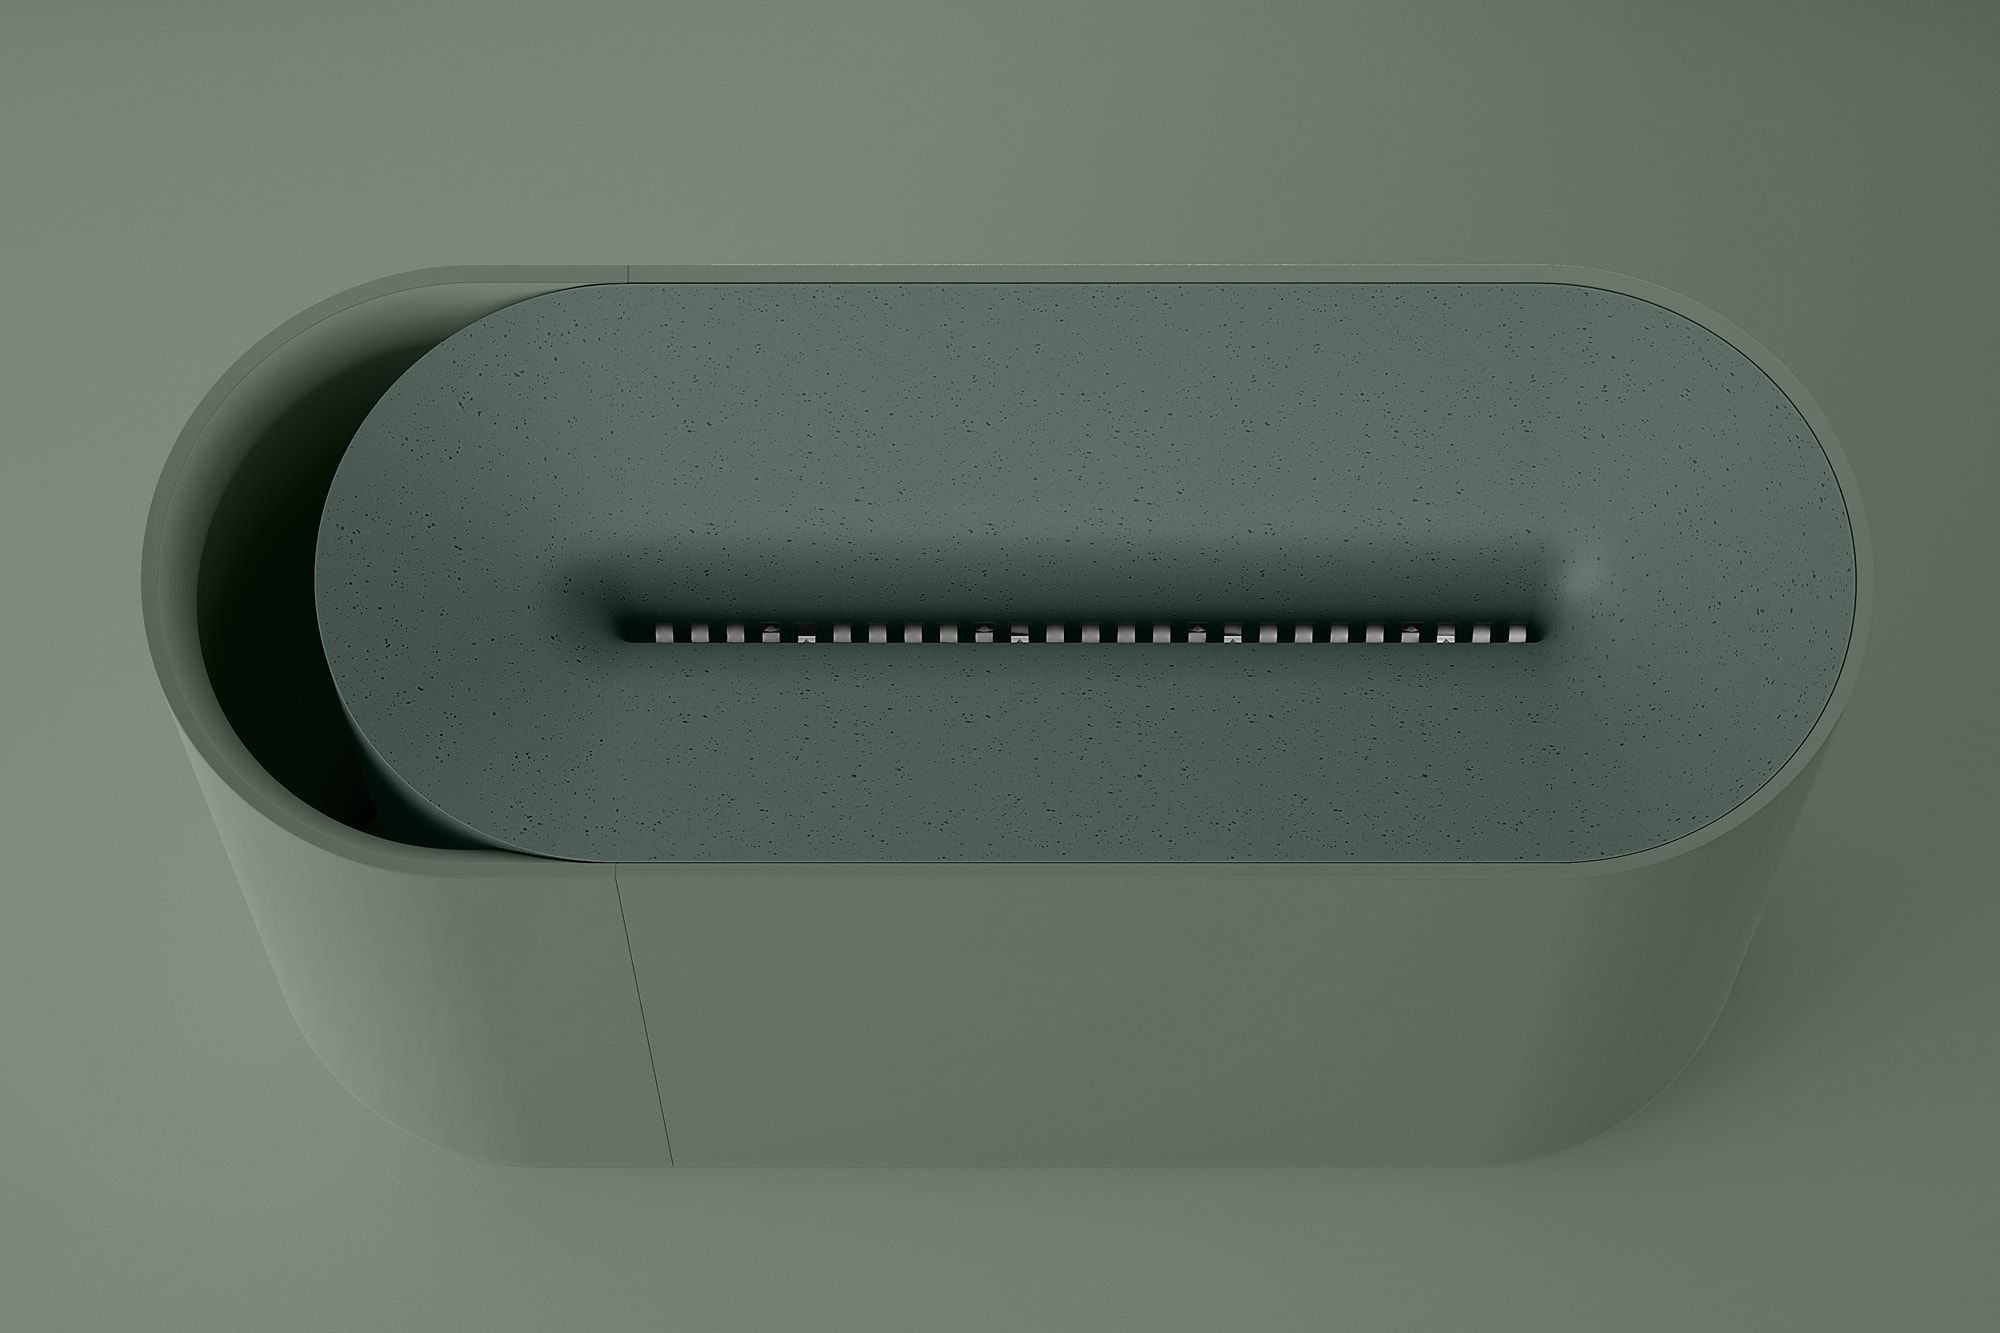 Blond-Industrial-Product-Design-Agency-Studio-London-Paper-Shredder-20